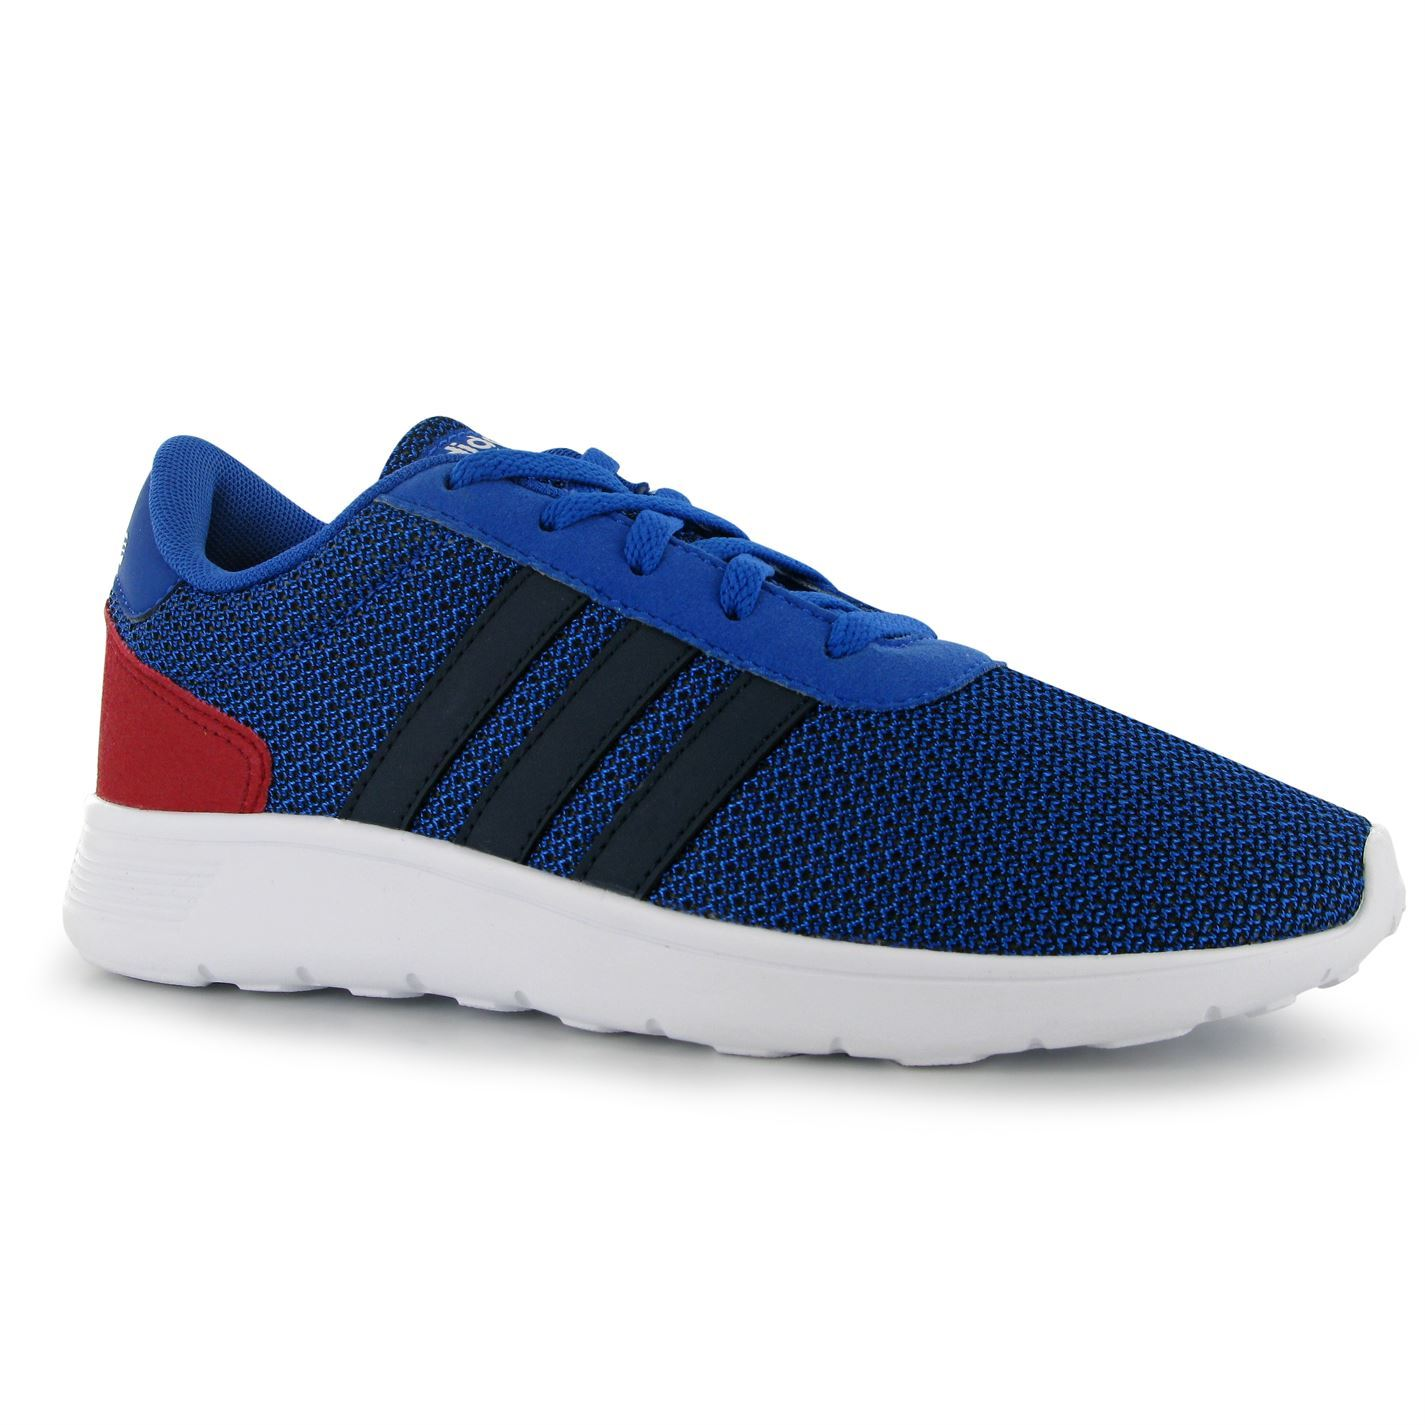 Adidas Light Up Shoes Uk